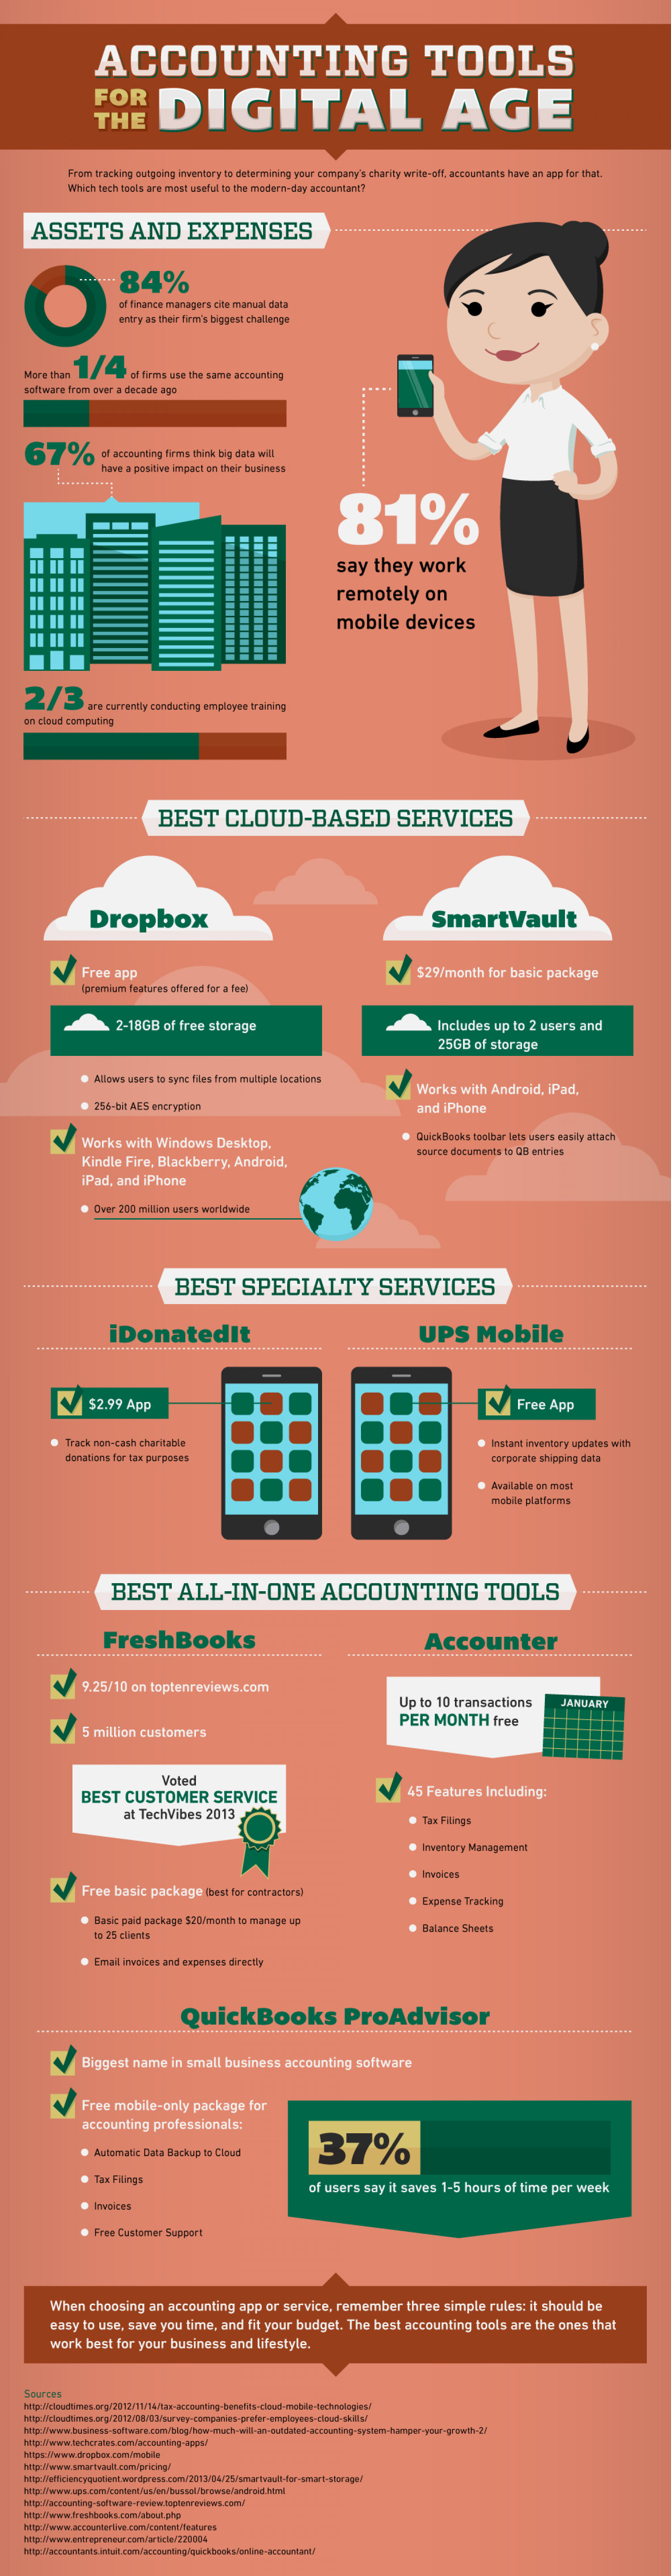 Accounting Tools For The Digital Age Infographic